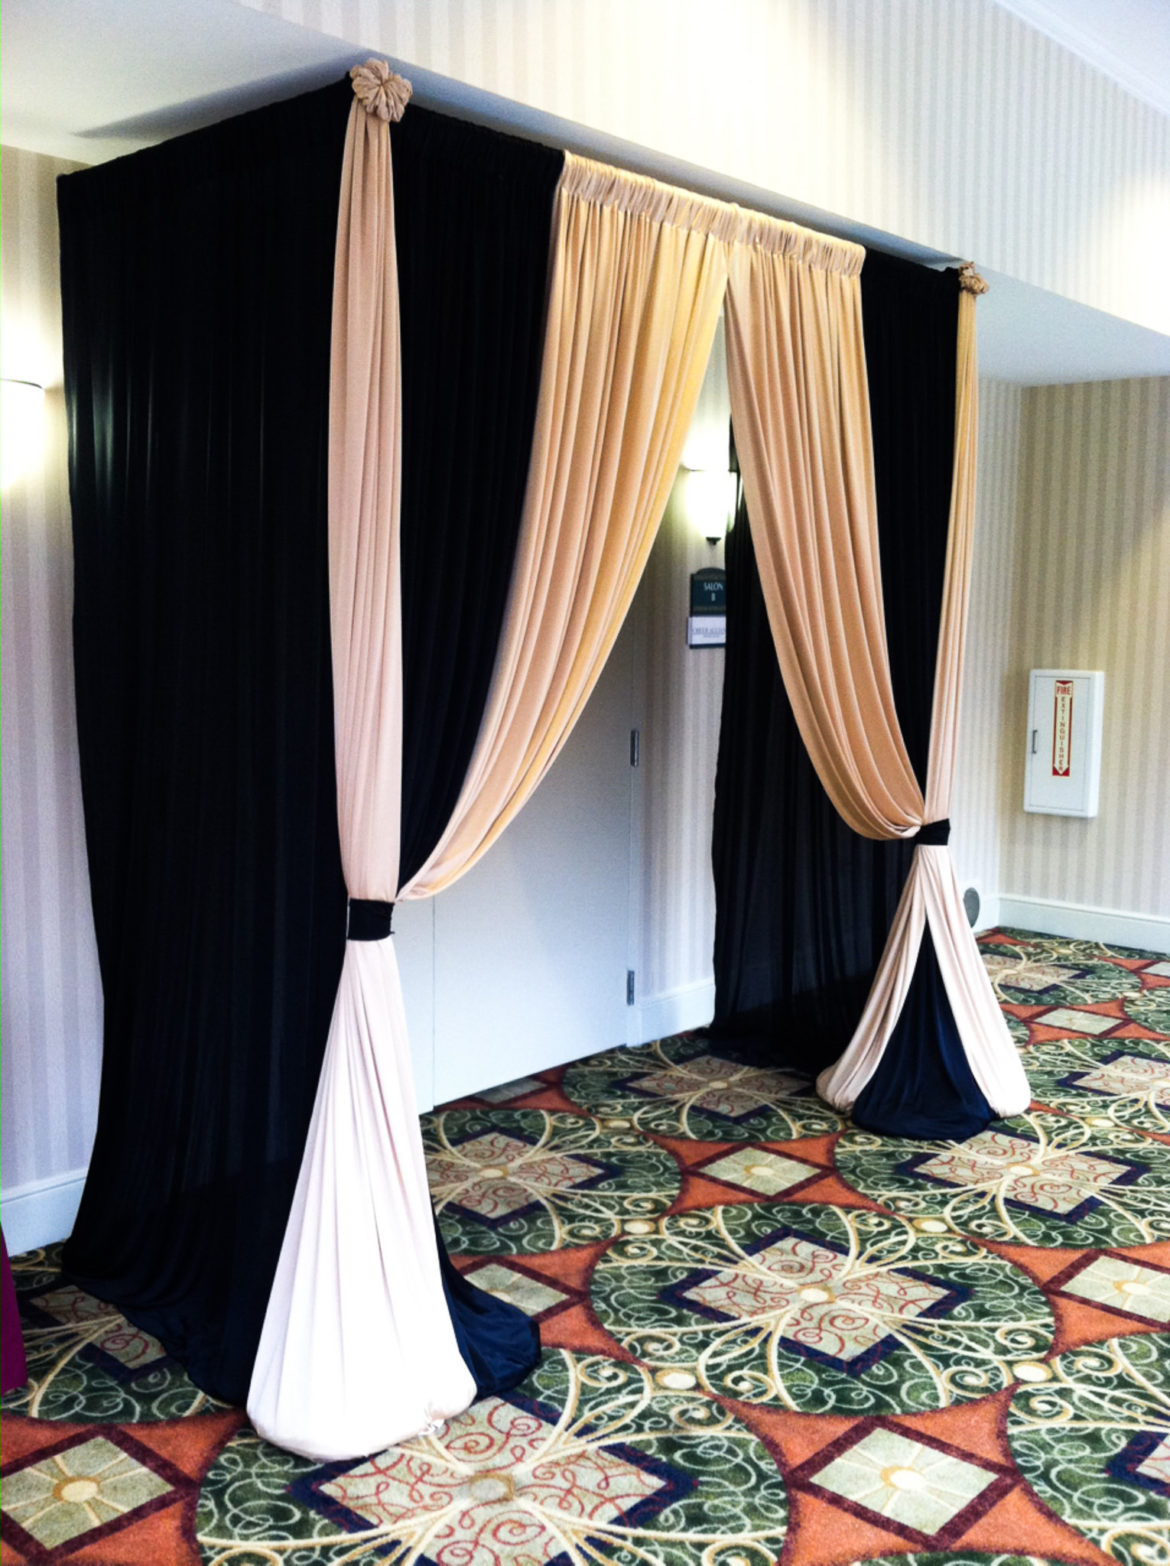 HGISTCH Drape Entrance Black Gold